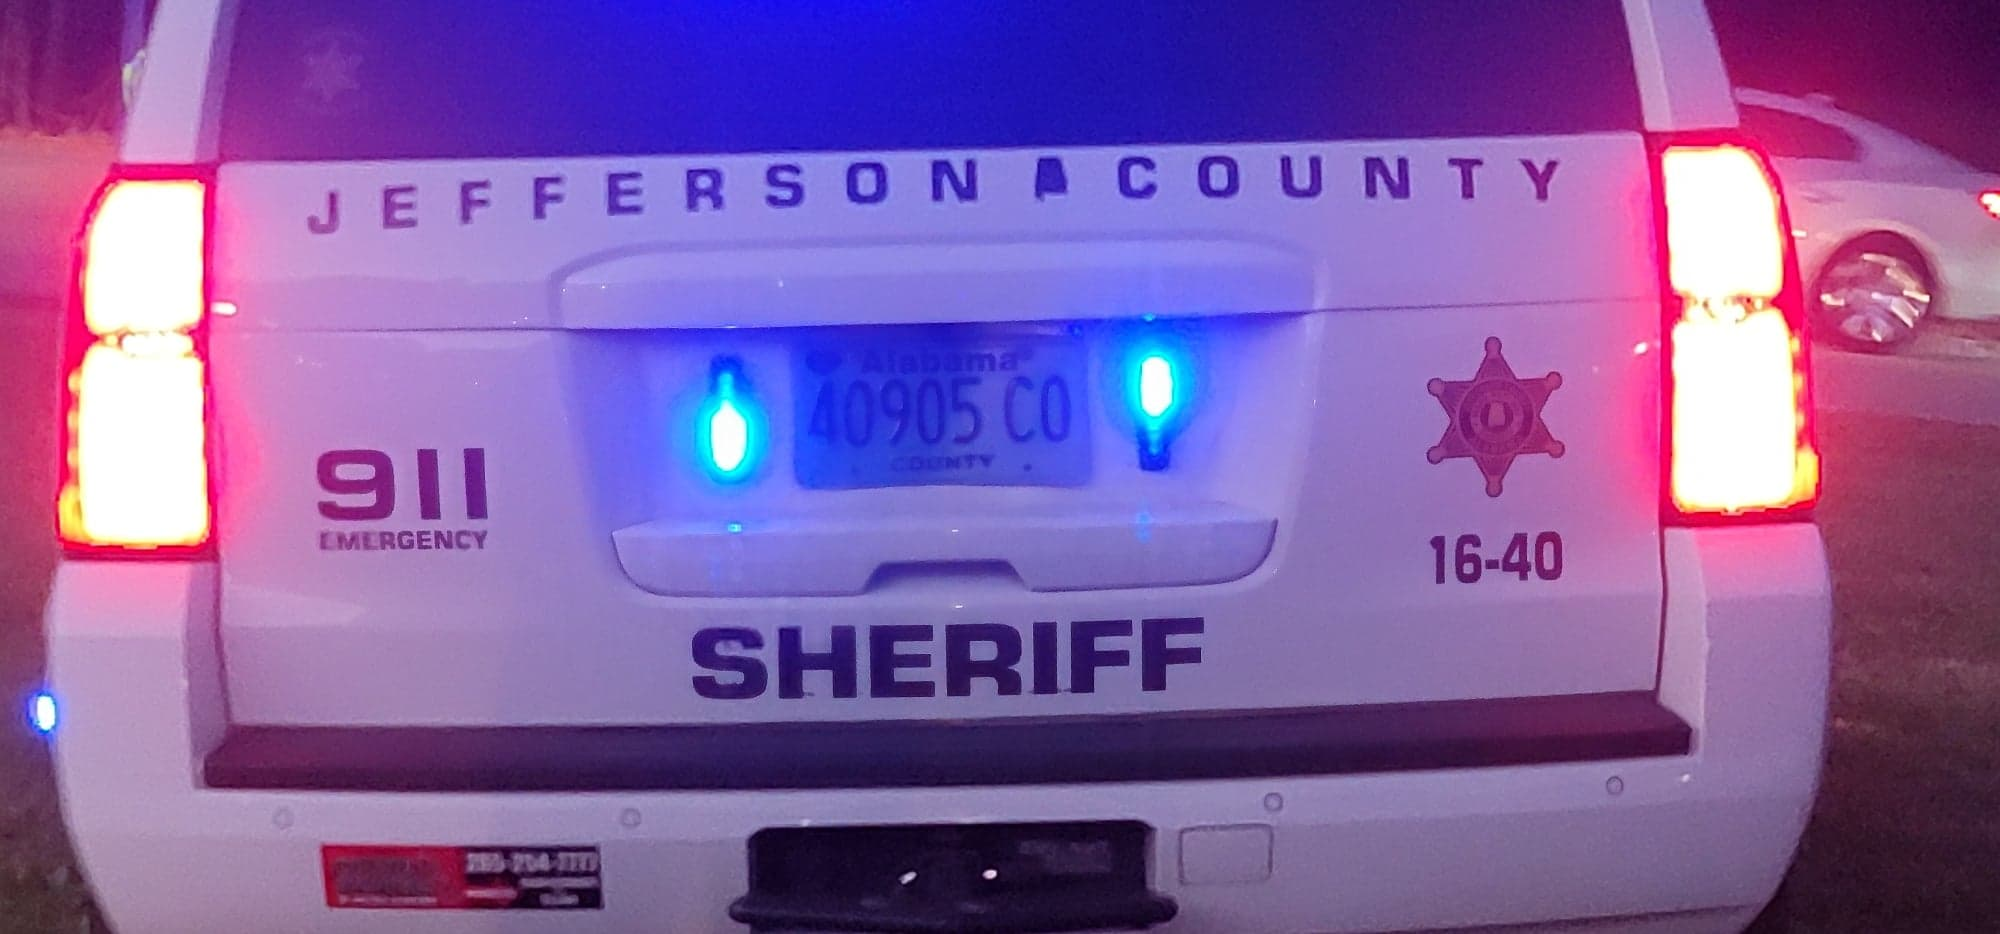 2 killed in head-on collision identified by Jefferson County Coroner